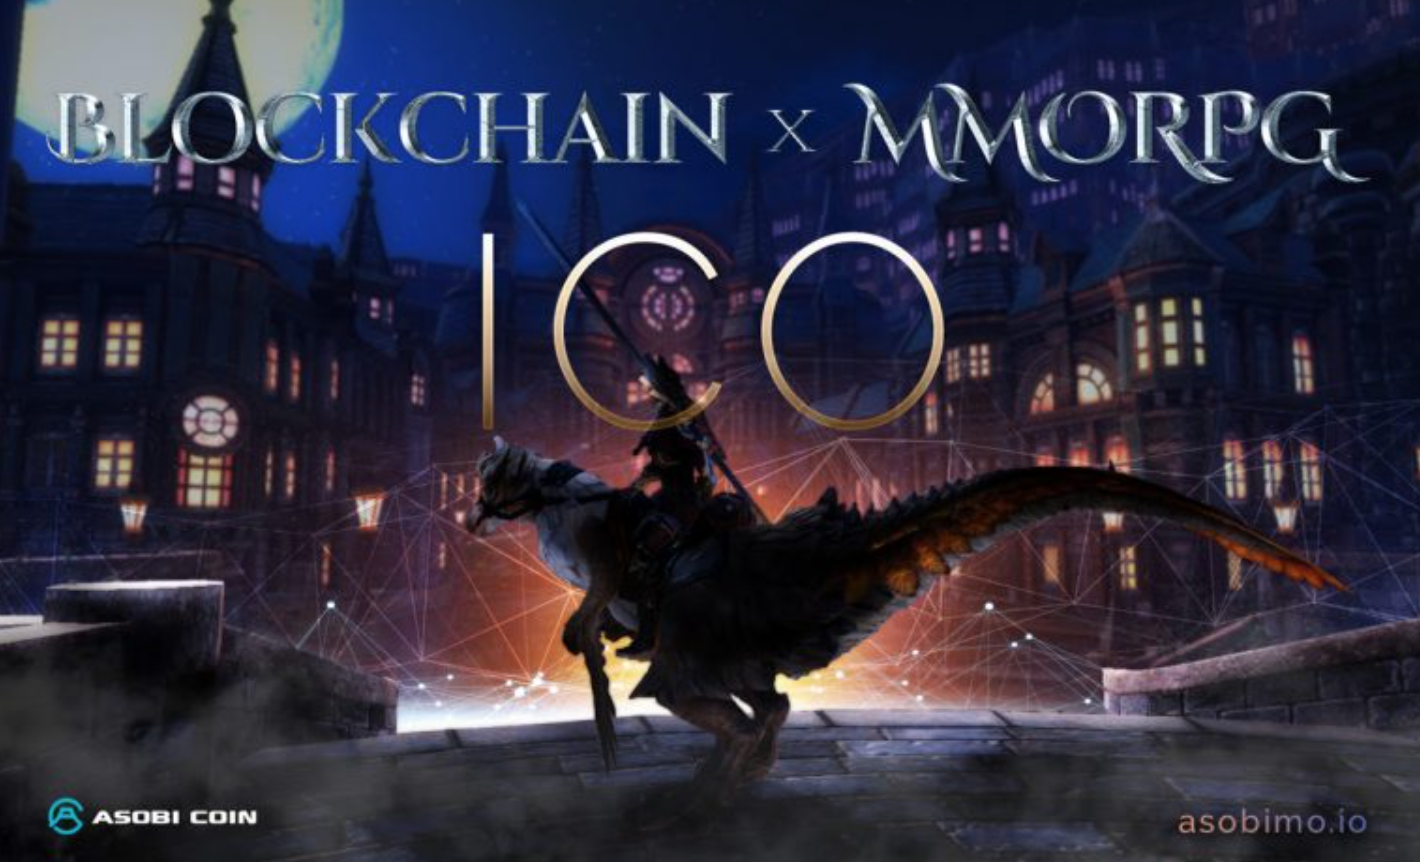 Via Mxdwn Games Project Asobi Coin Aims to Create MMORPG